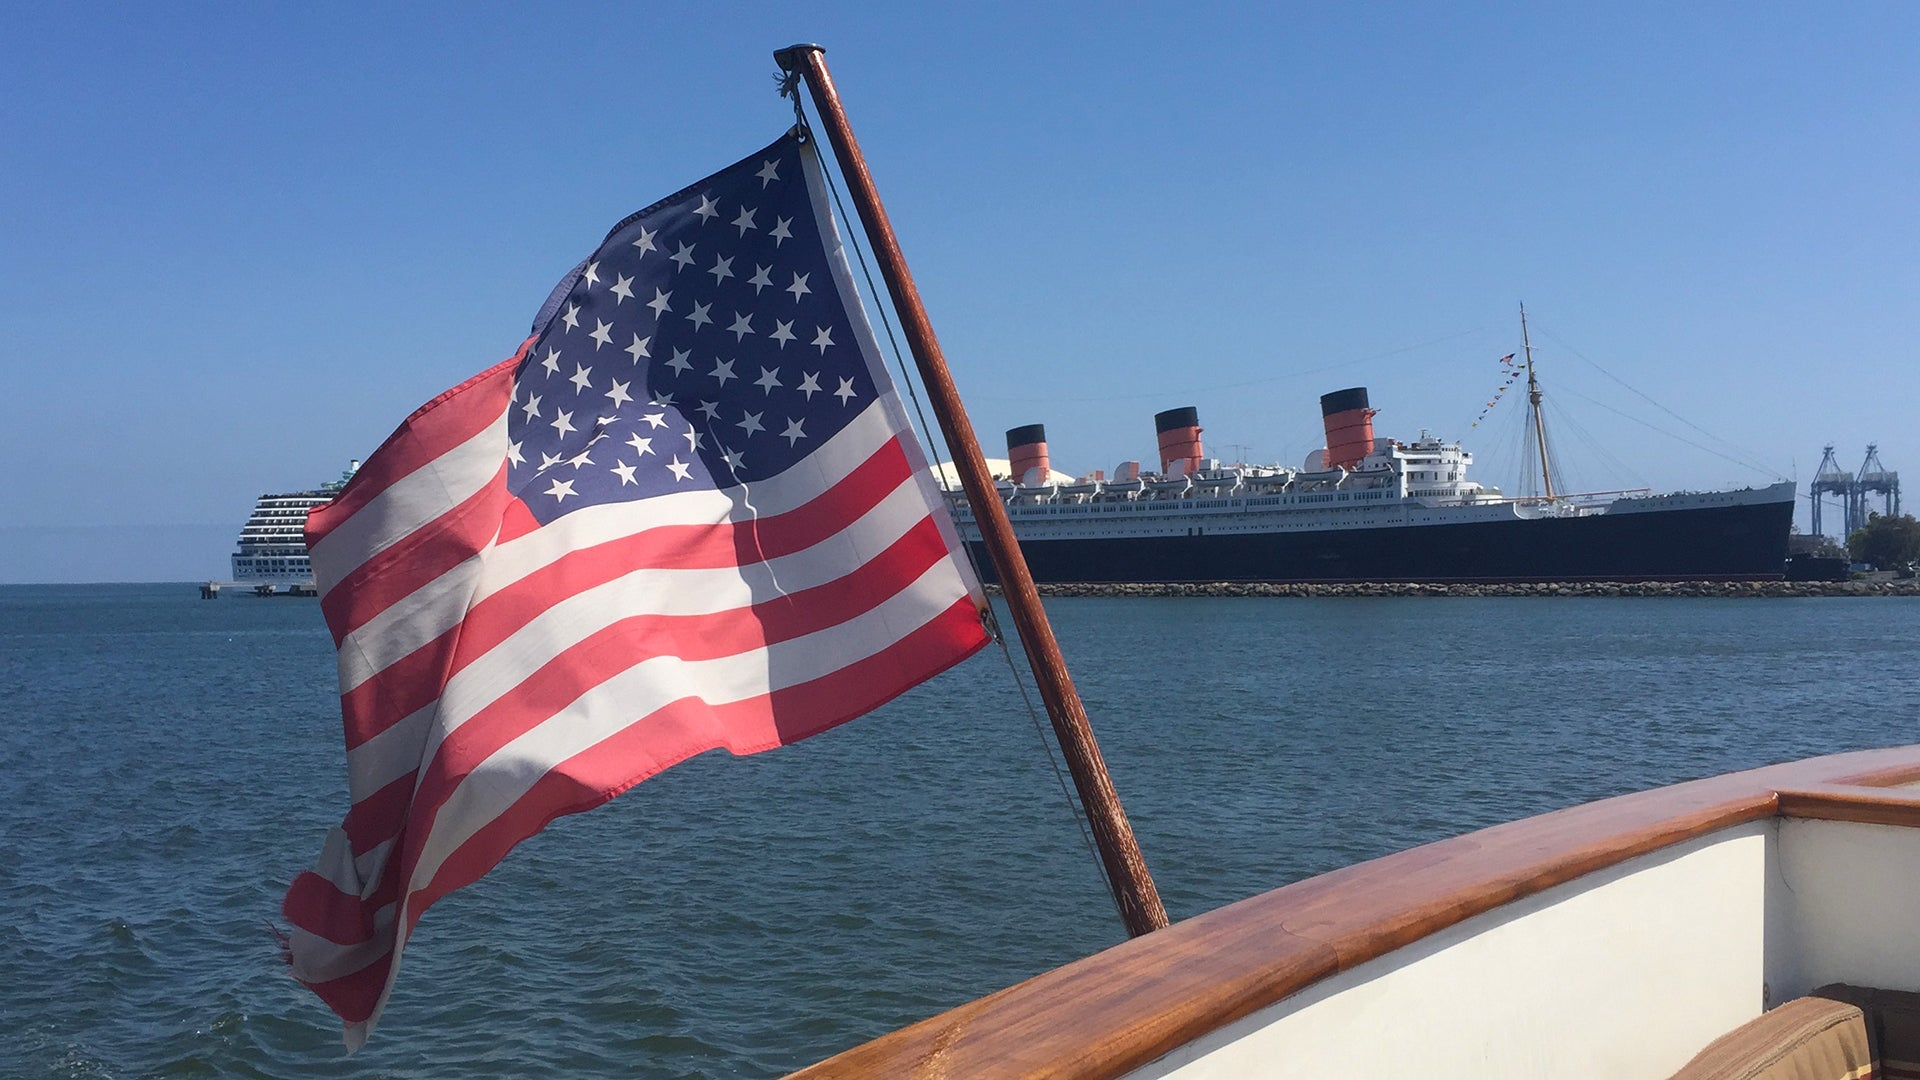 Wickliffe Los Angeles Queen Mary American Flag